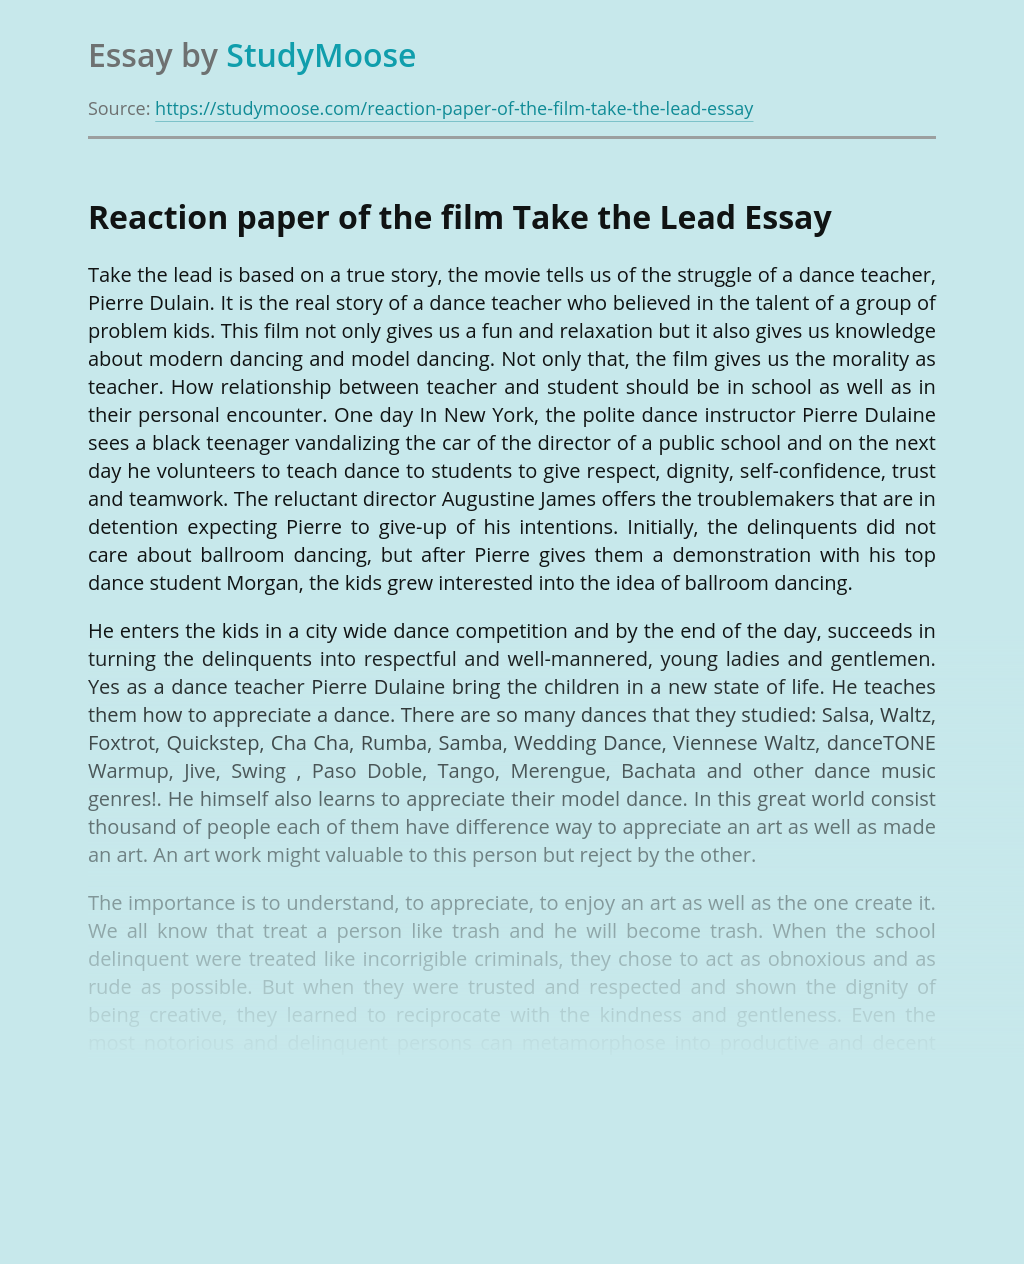 Reaction paper of the film Take the Lead